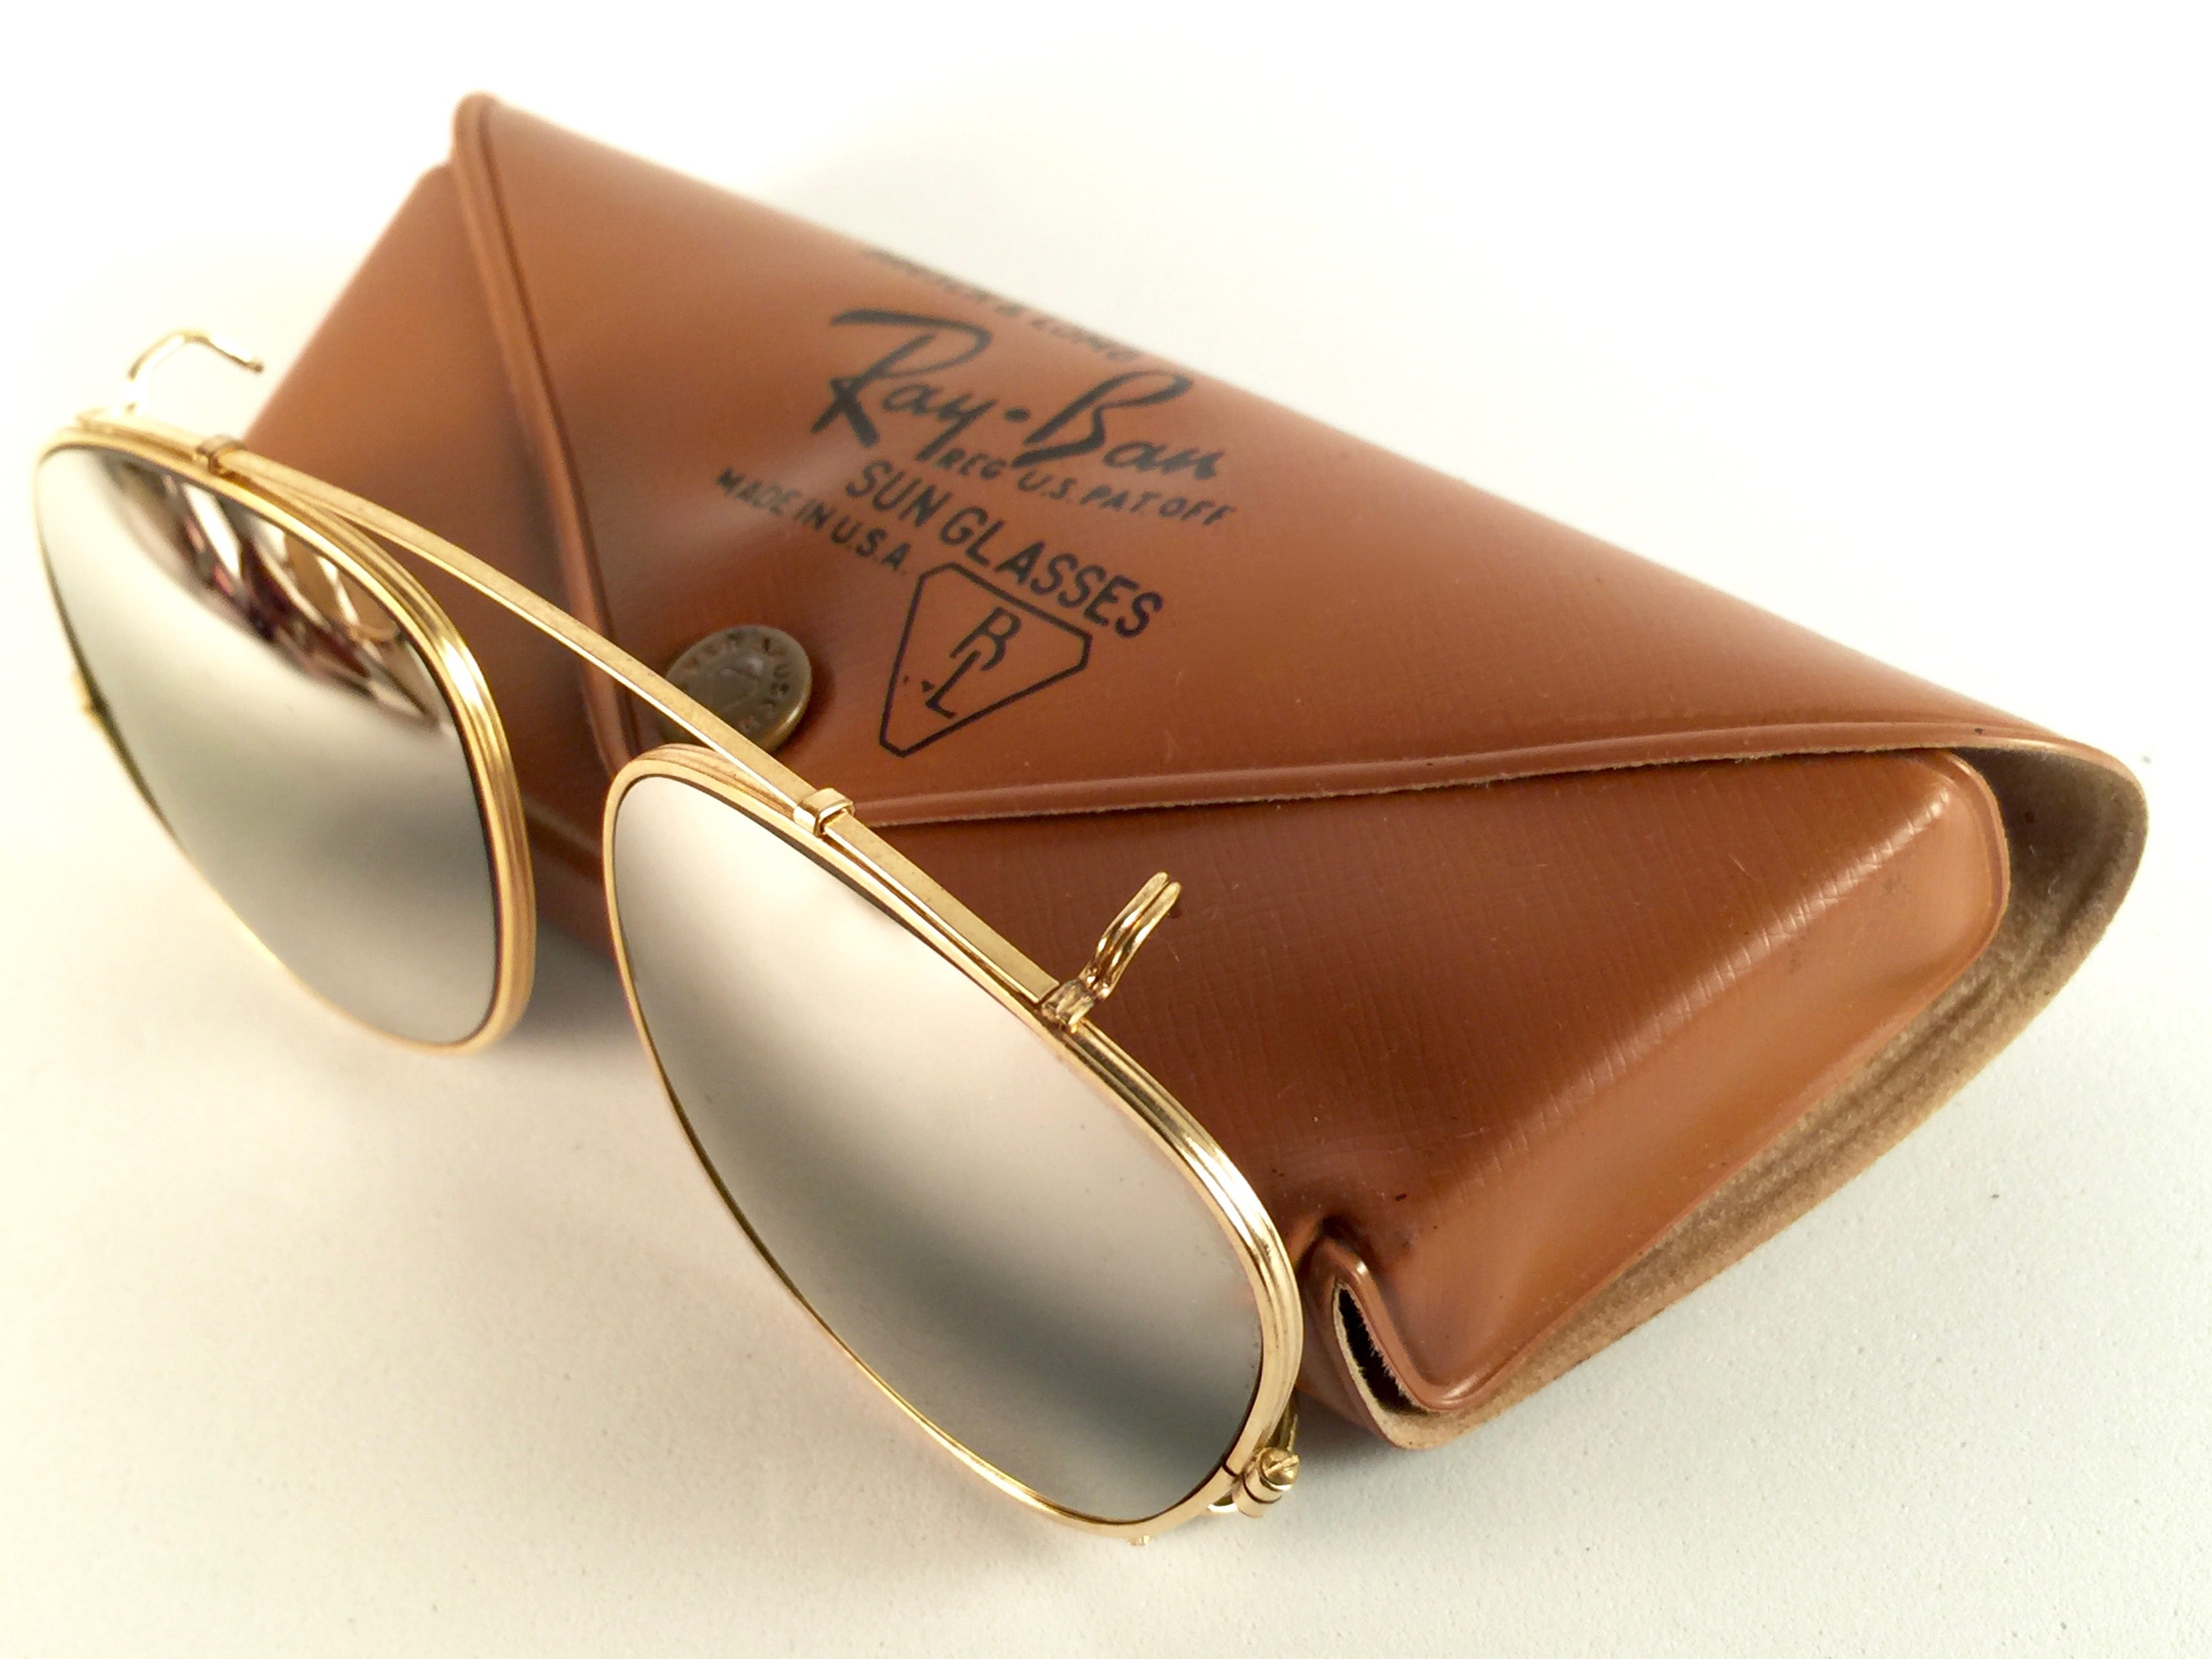 649b31436e4 New Vintage Ray Ban B L Clip On Deep Freeze For Sunglasses Collectors Item  USA For Sale at 1stdibs